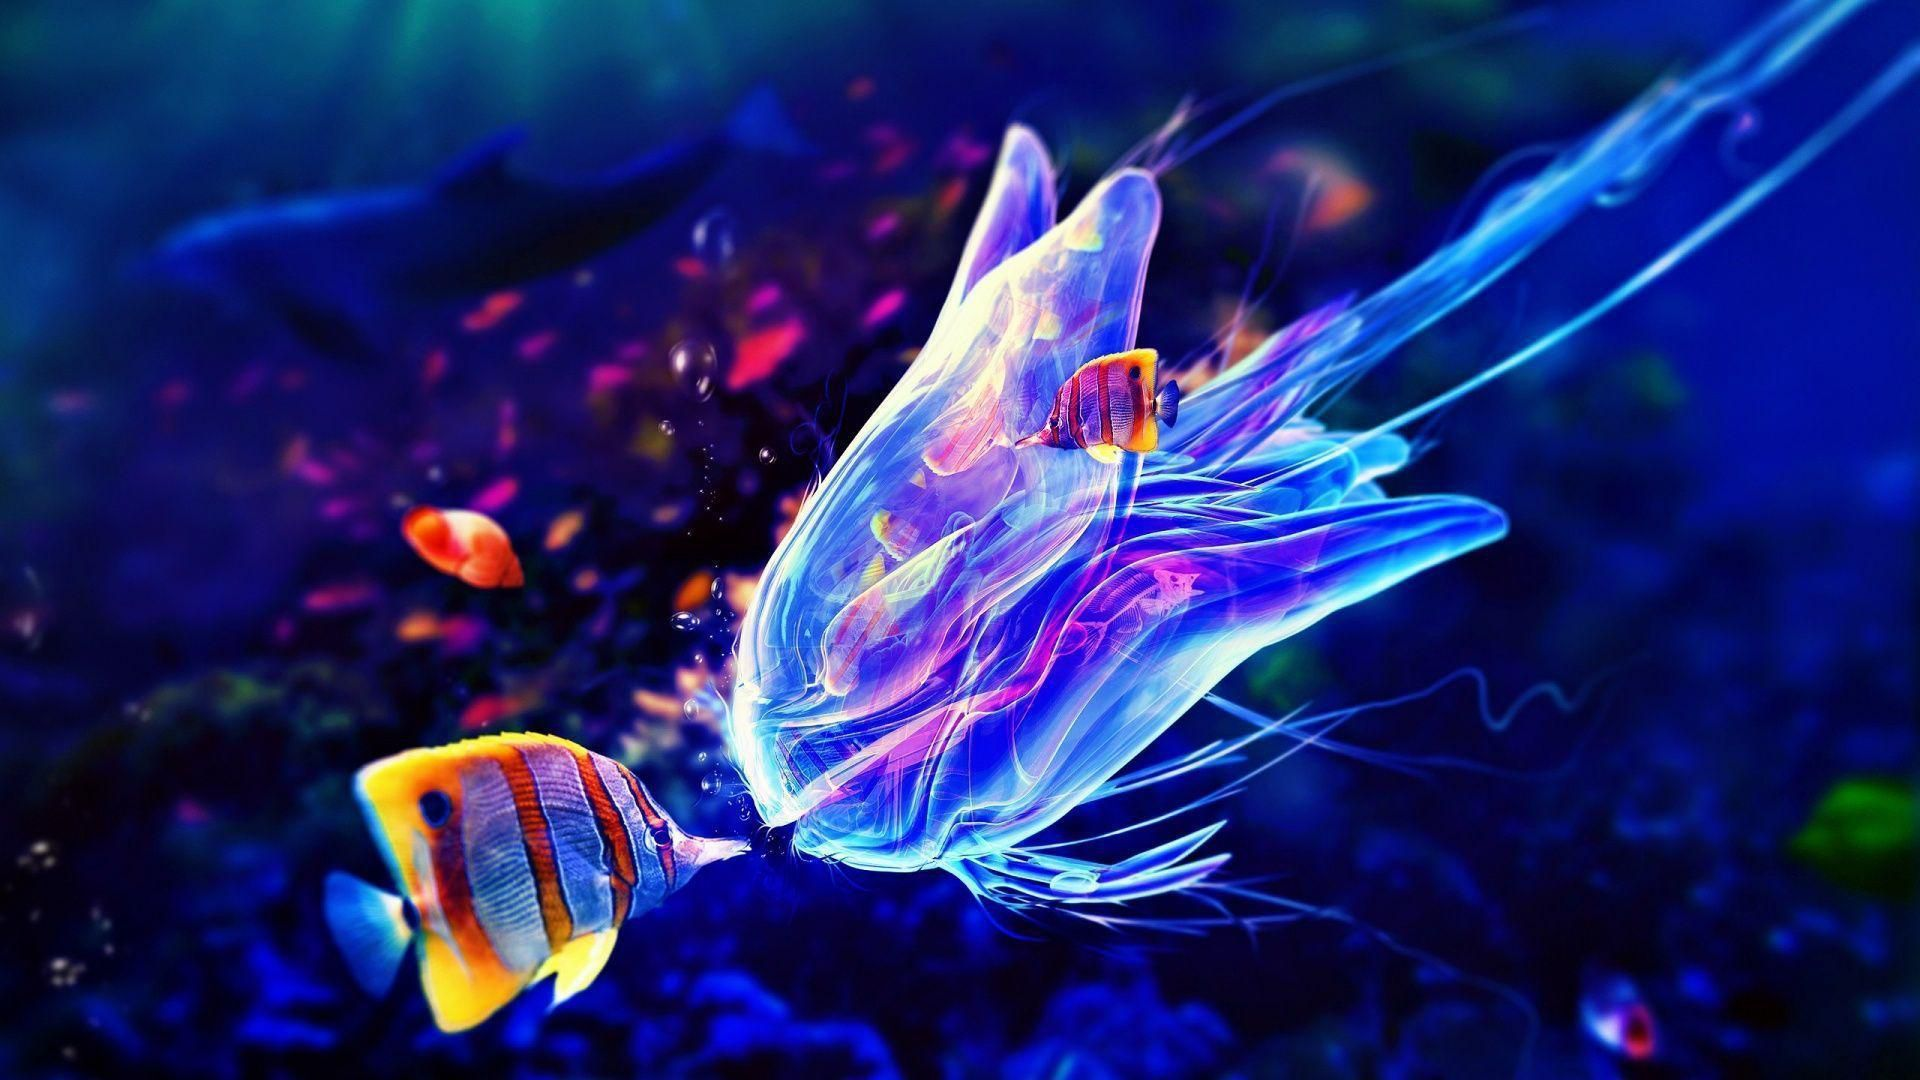 Box Jellyfish Pictures